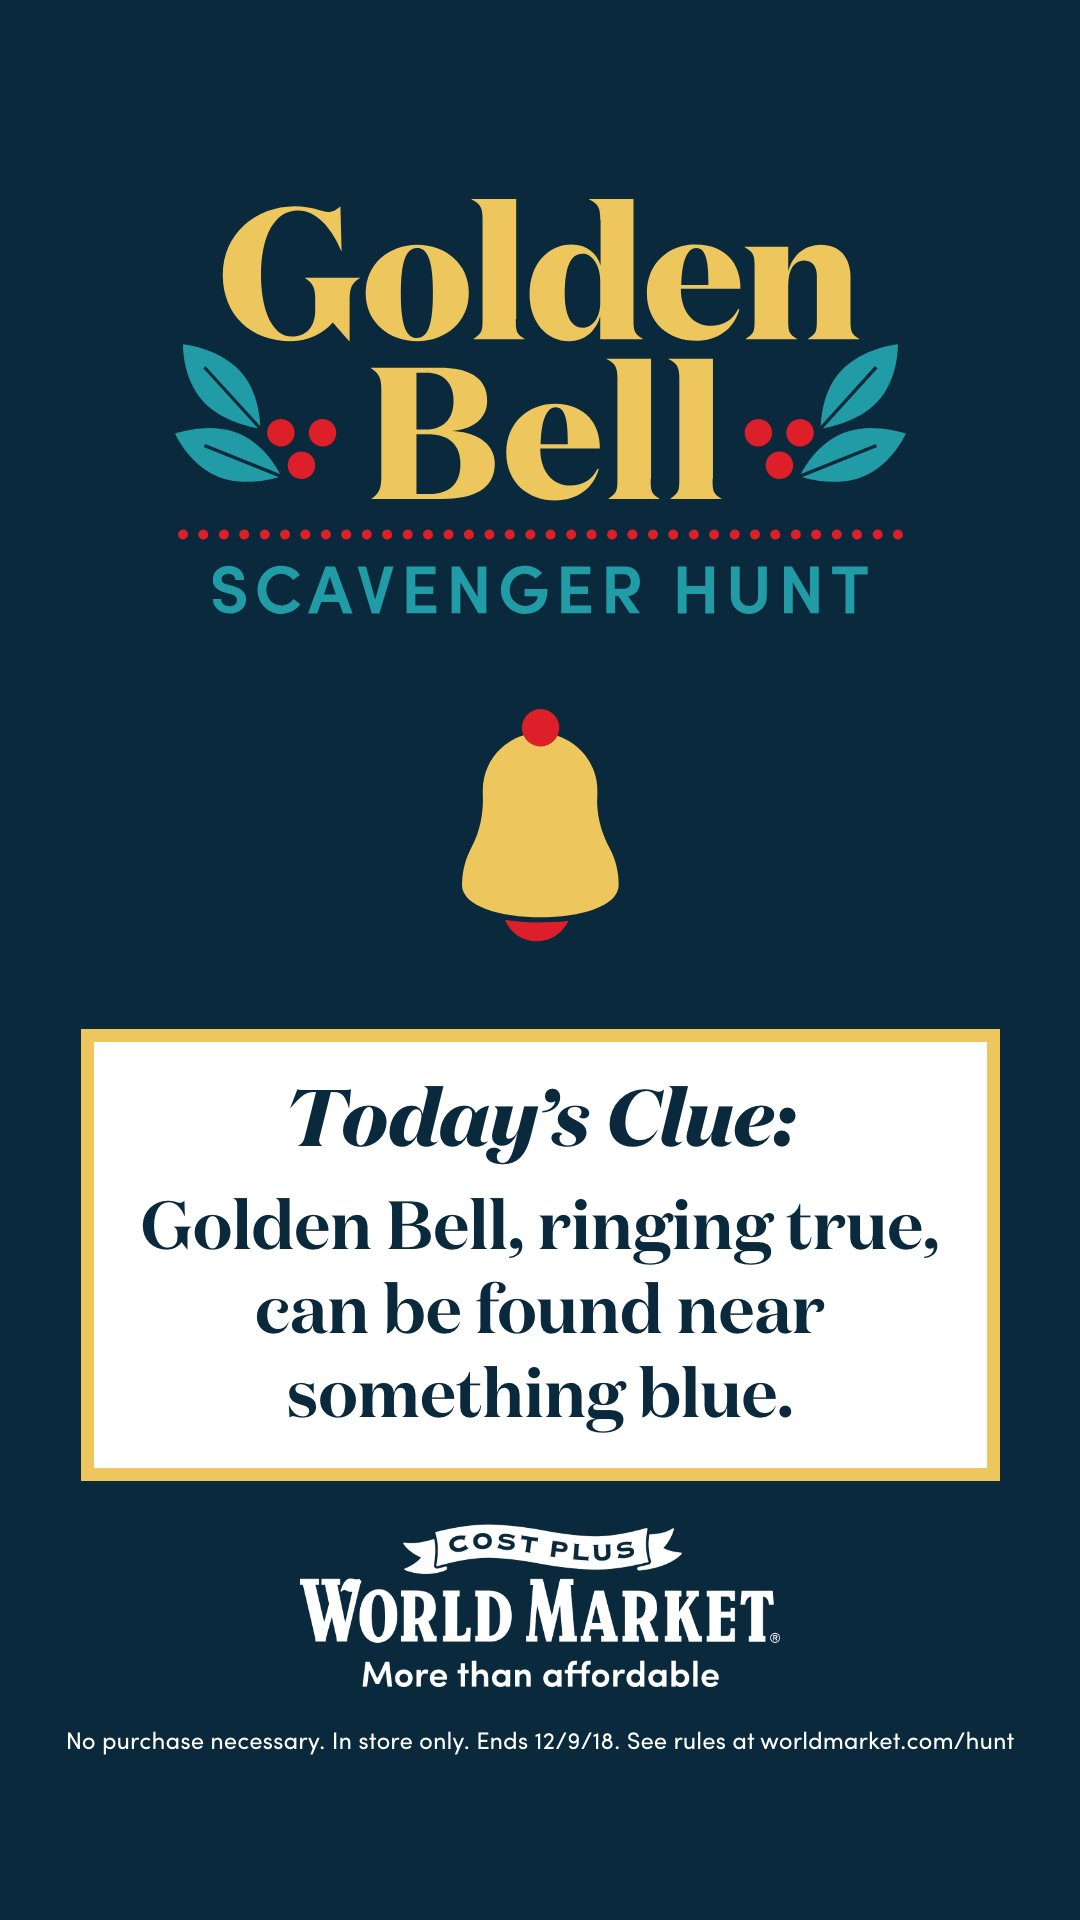 Golden Bell Clue #1 11.1.2018 #ad #sponsored #goldenbell